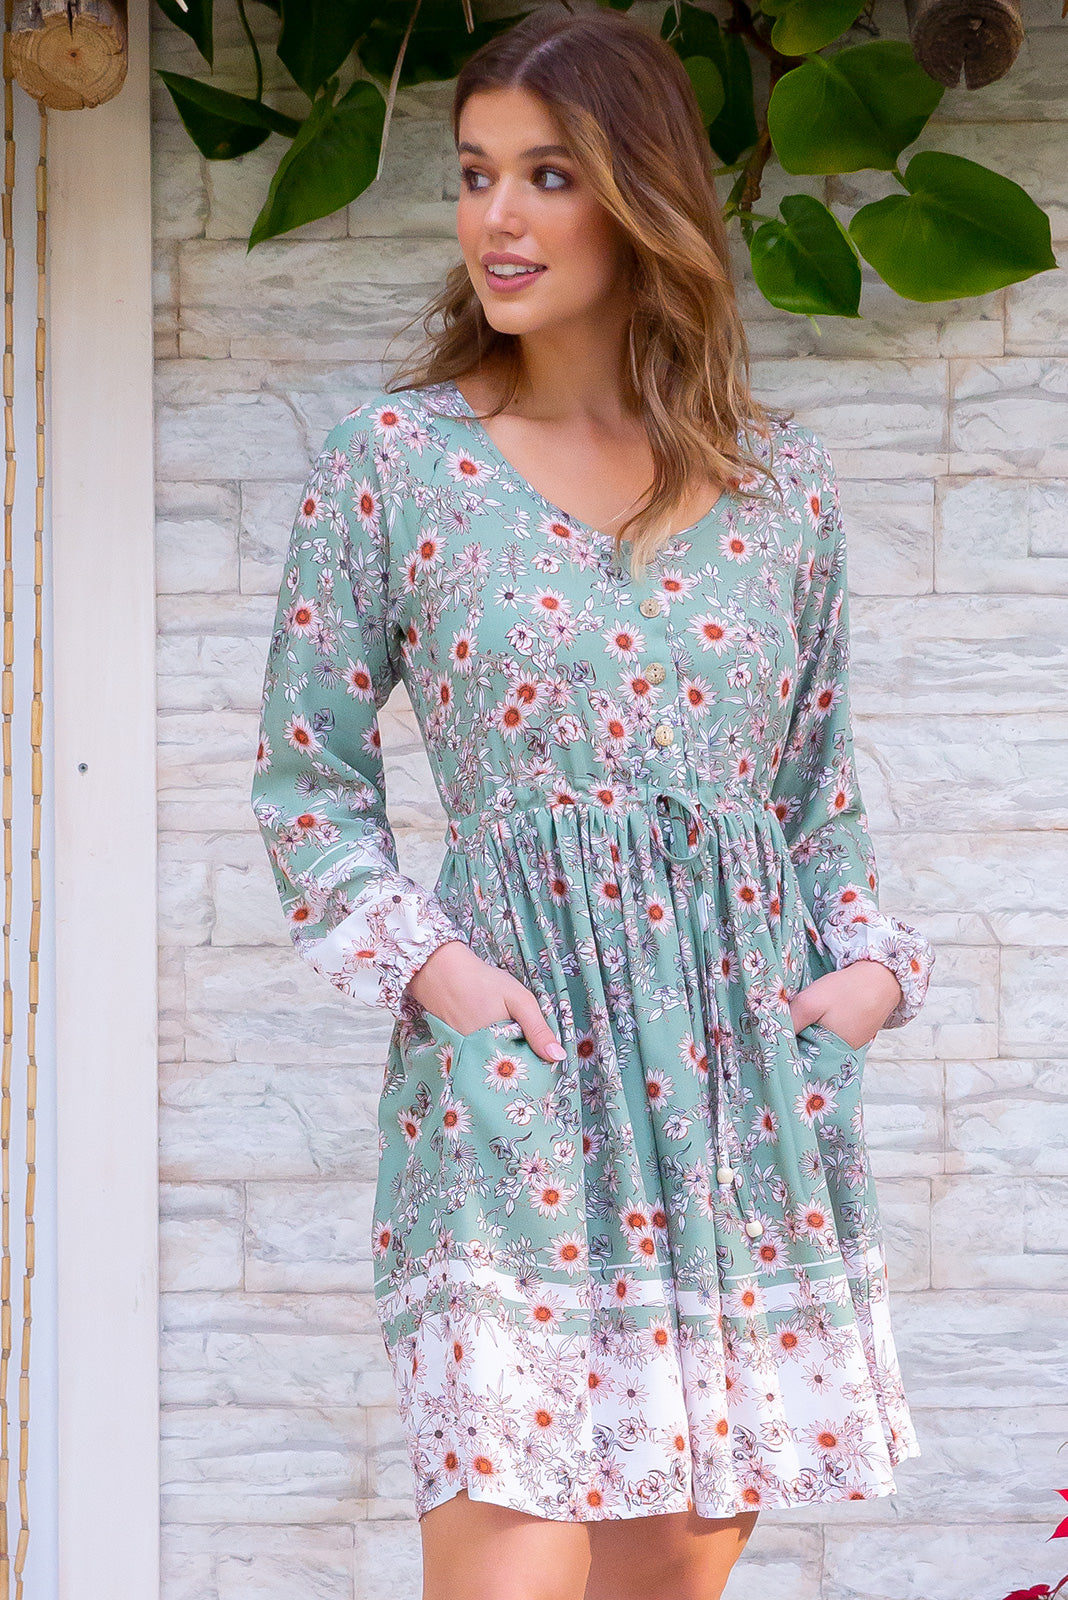 Jennifer Pistachio Green dress is a bohemian style Spring inspired mini dress. A pastel green with floral pattern. Very sweet and feminine. Long sleeves and drawstring. 100% rayon.